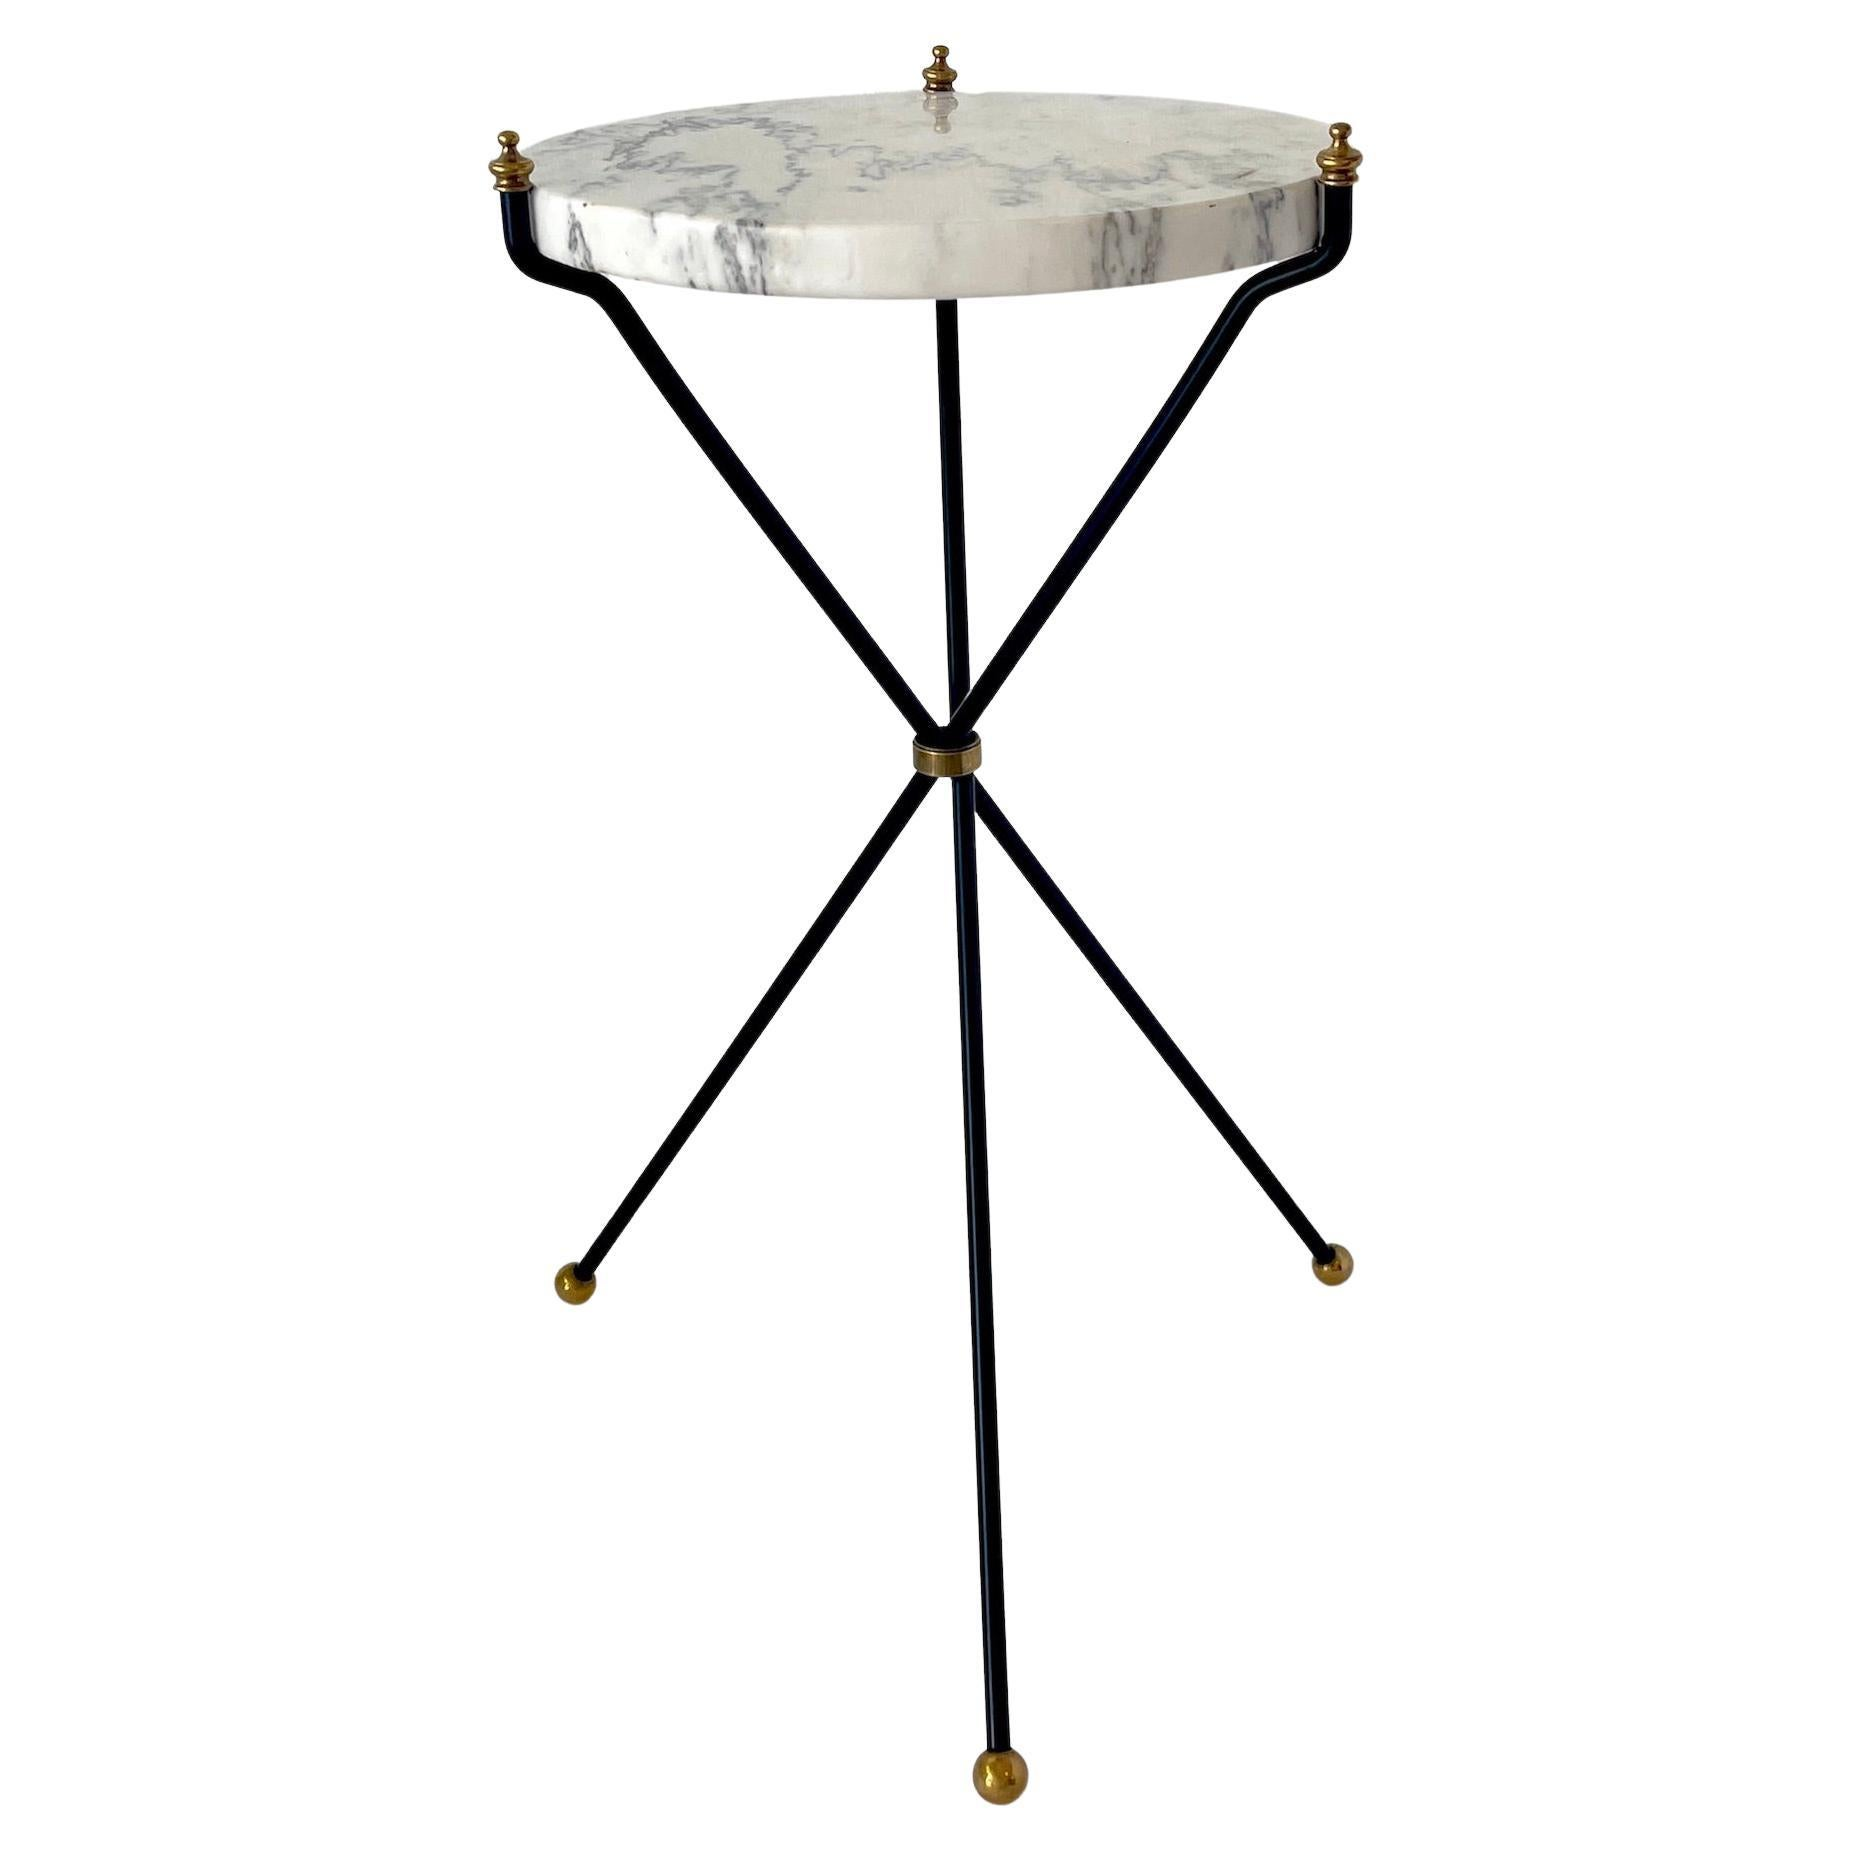 French Directoire Style Marble & Bronze Drinks Table, Attributed Maison Jansen